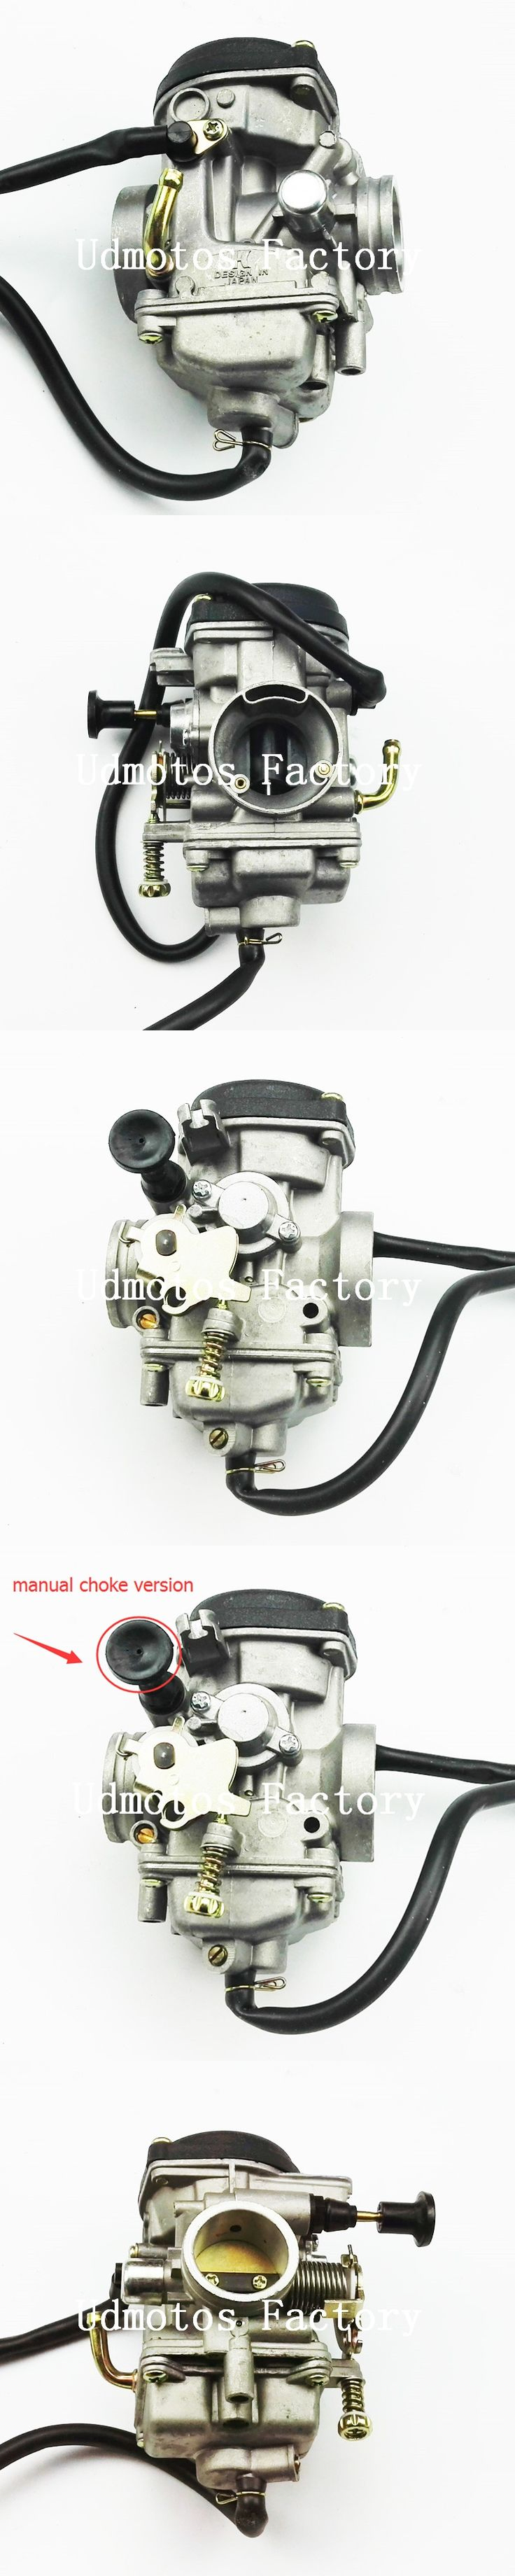 Manual Choke Version Size 30mm Carburetor TK JIANSHE LONCIN BASHAN 250cc ATV QUAD ATV250 JS250 Carburetor